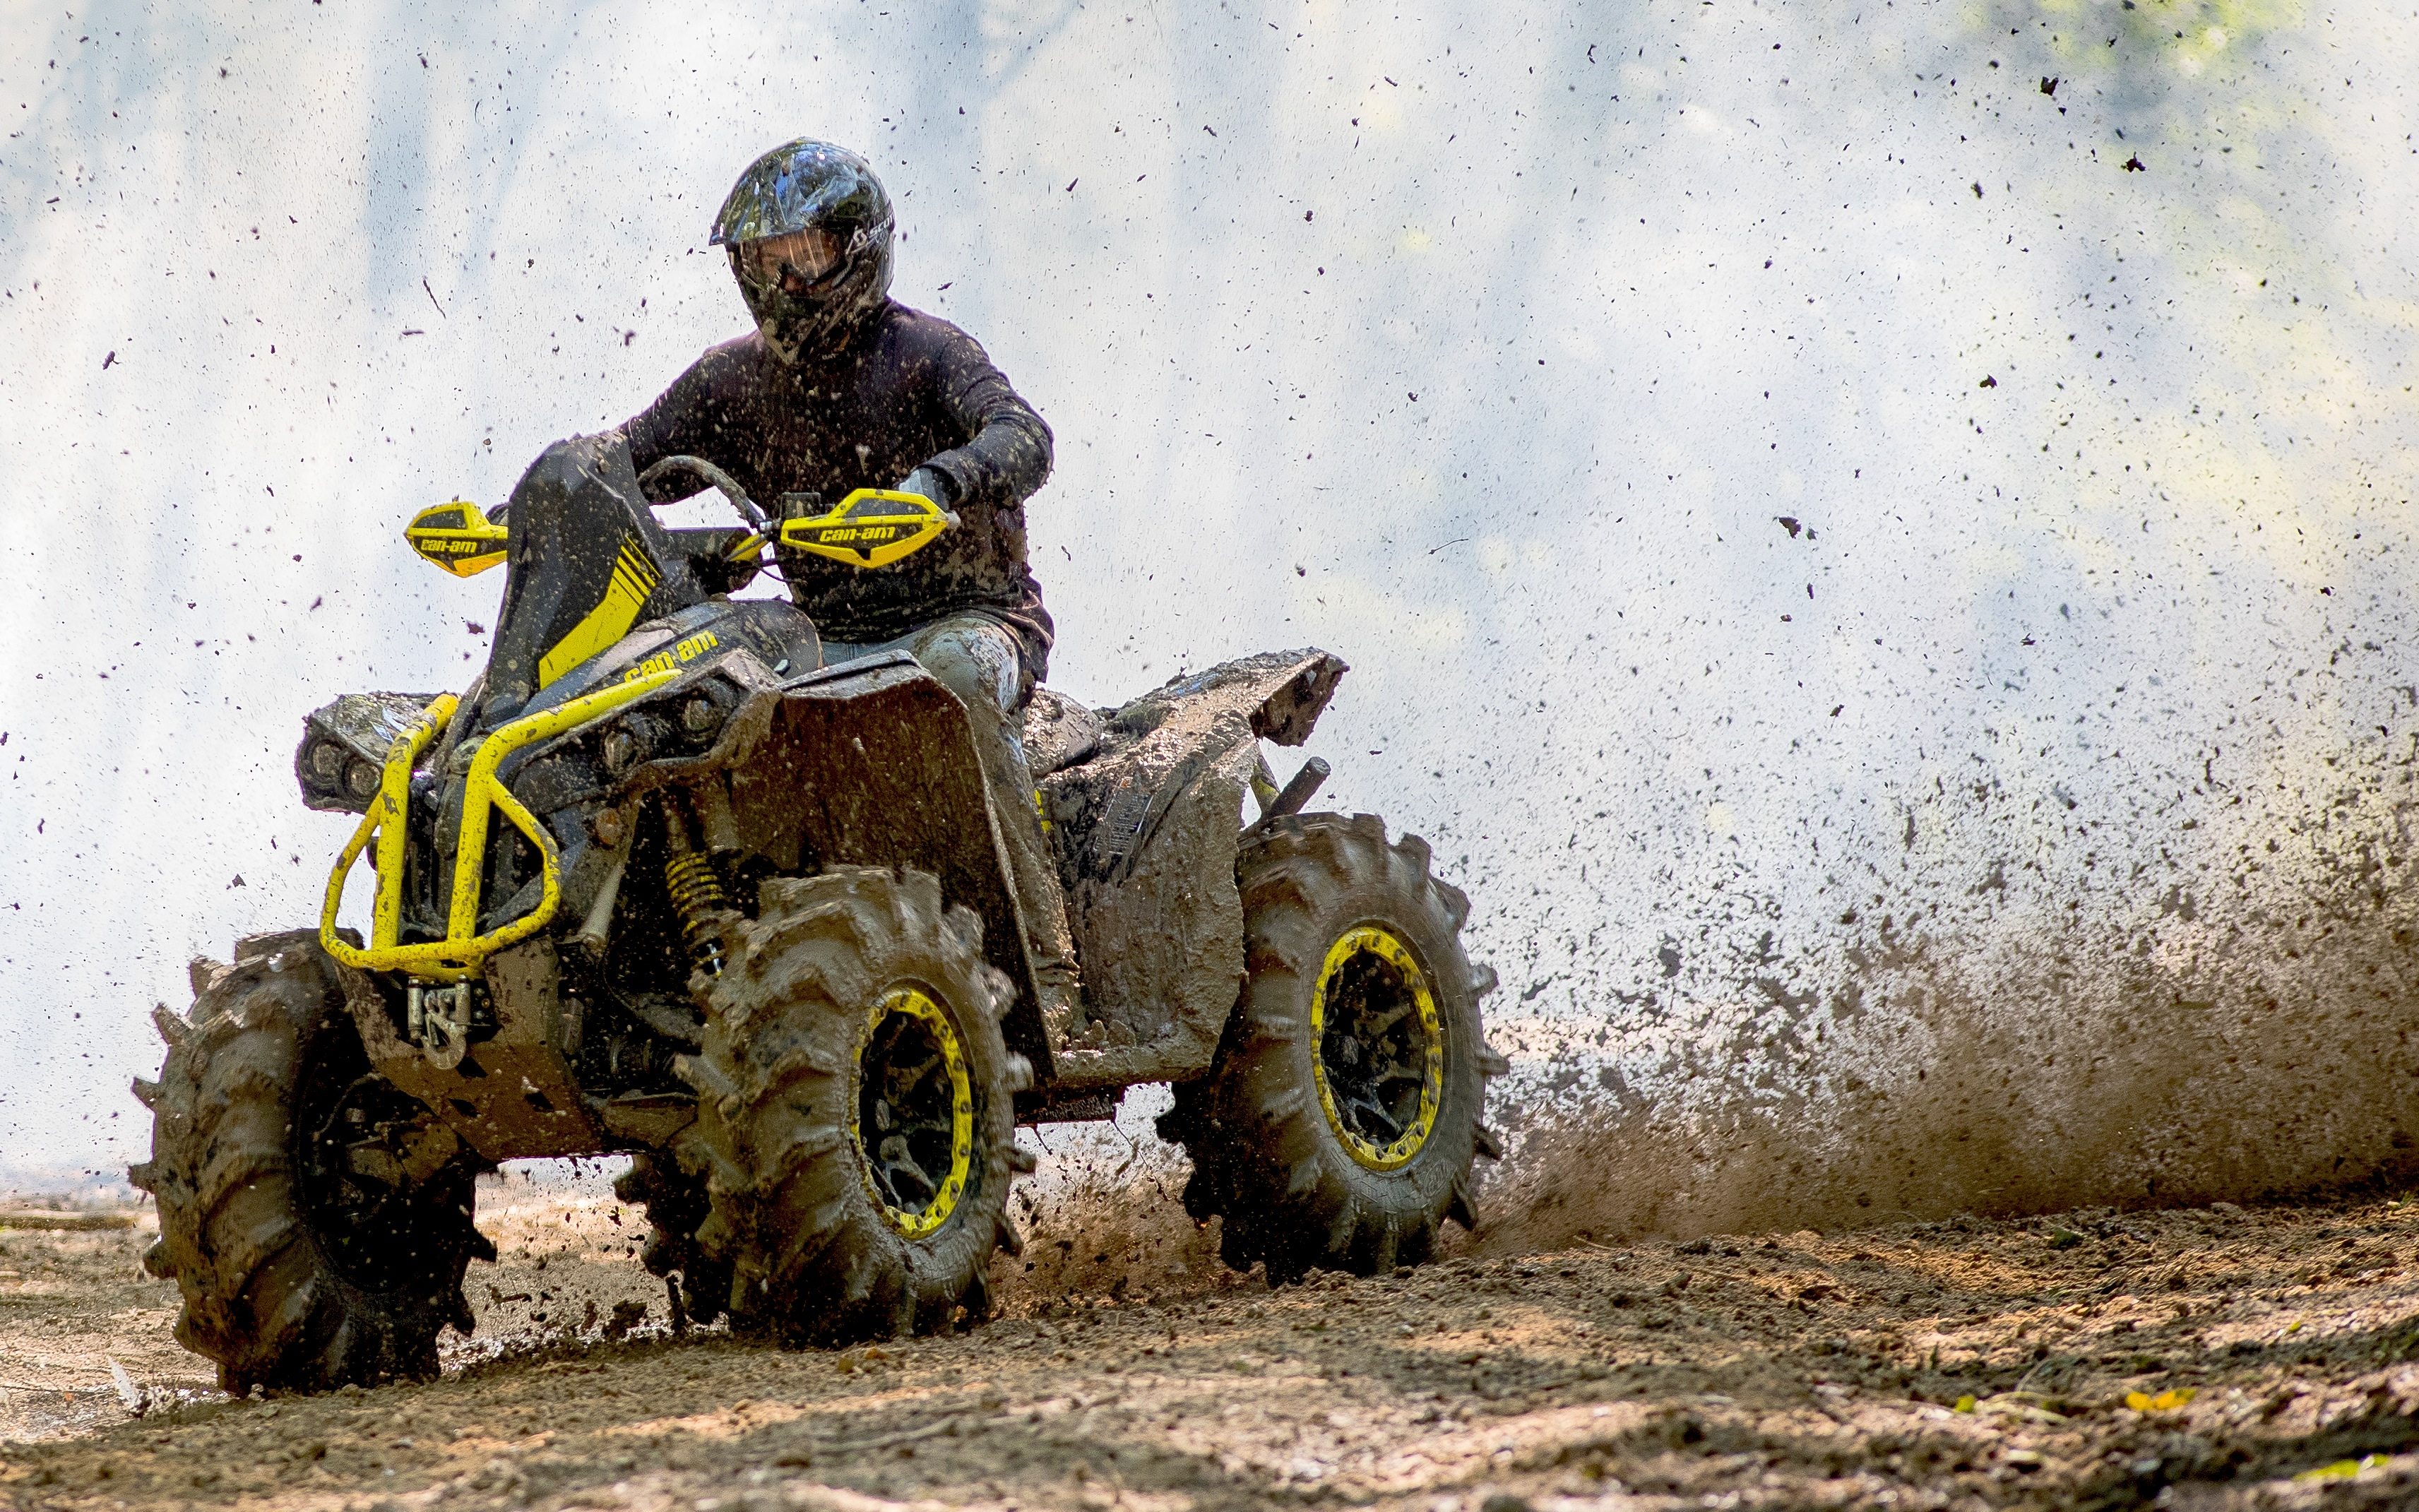 can am outlander xmr 1000 wiring diagram html with Can Am Outlander 570 Xmr on Polaris 1000 Or Canam 1000 Which Is Better further Outlander 1000 Engine Diagram as well Can Am Outlander Transmission Diagram moreover Can Am Outlander 650 Wiring Diagram as well Can Am Outlander Fuse Box Location.